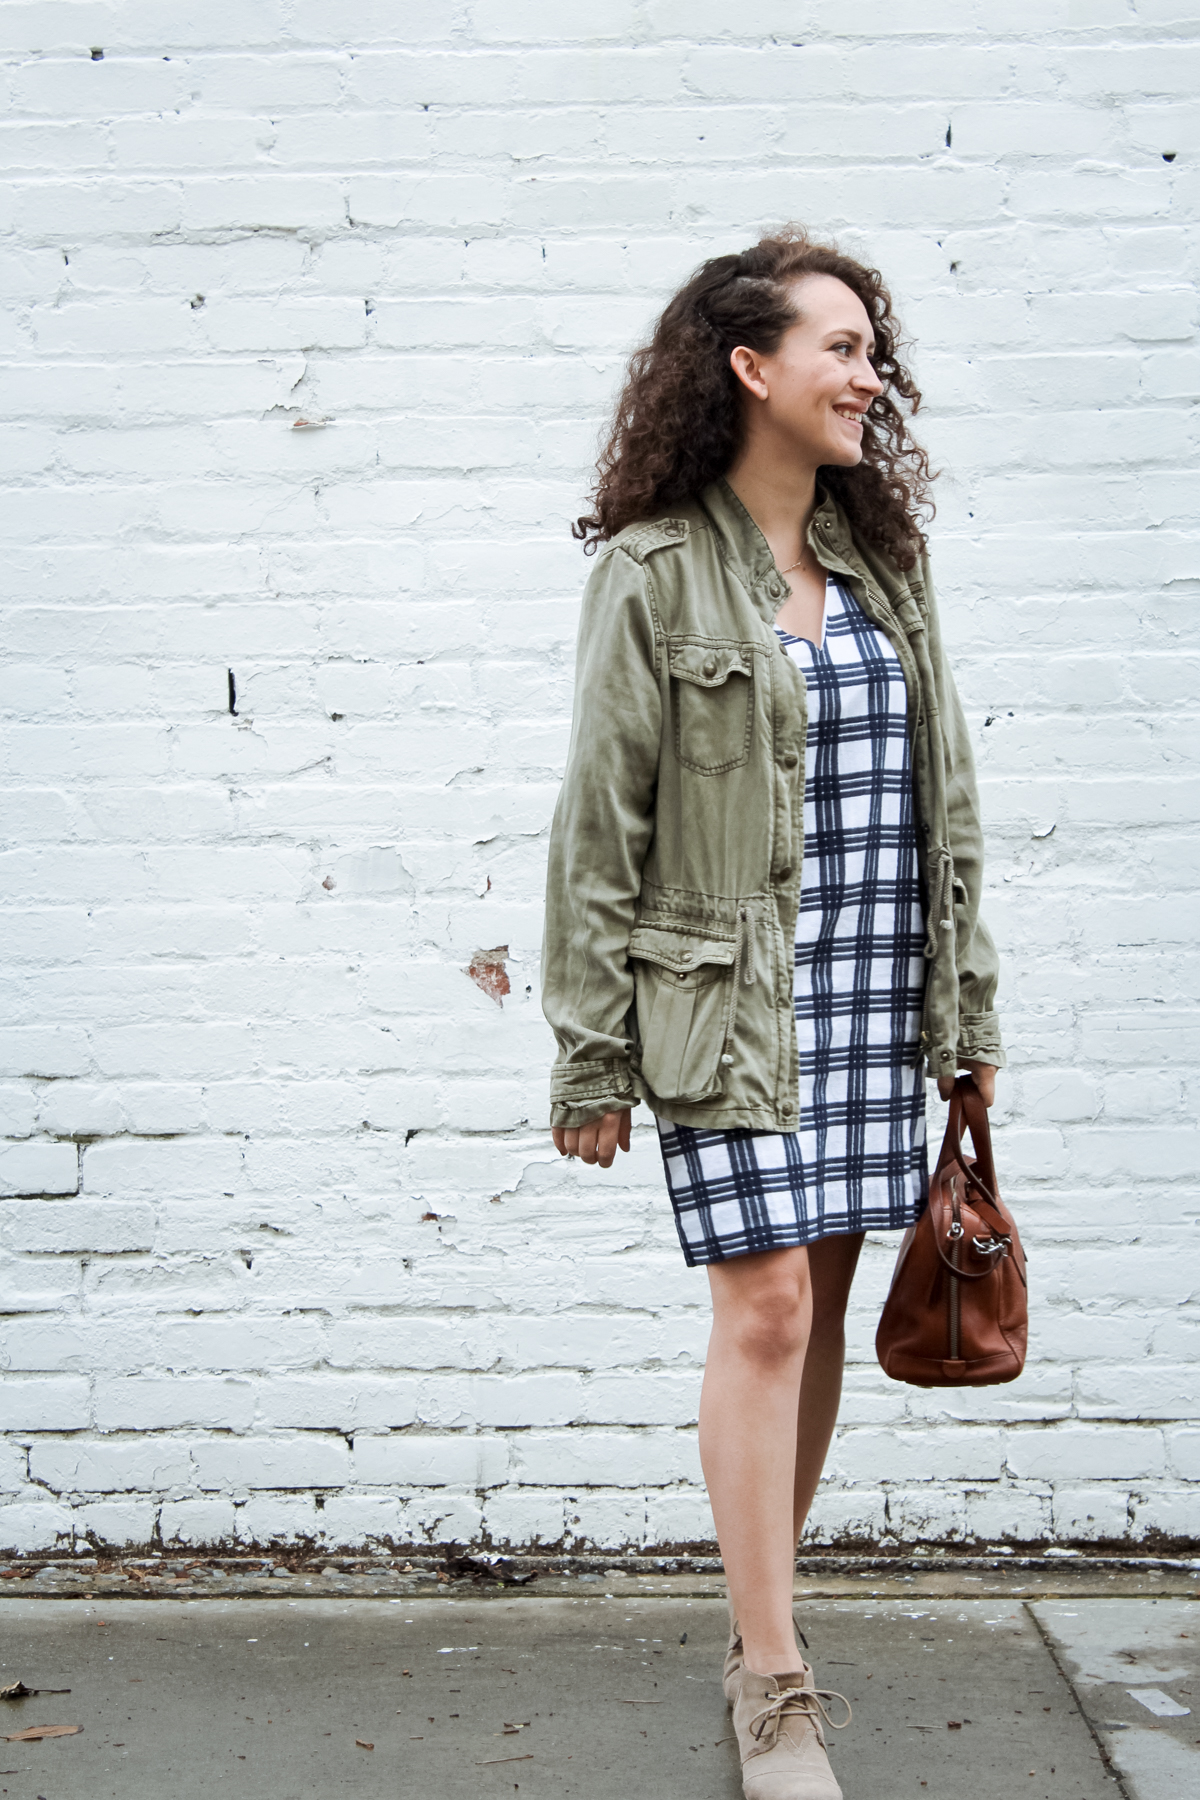 my look for day 10 of the spring 10x10/unfancy remix challenge is a rule breaker. a bell sleeve windowpane shift dress from madewell paired with a light olive green jacket, suede wedge heels from TOMS and a leather satchel bag from Fossil | tintedgreen